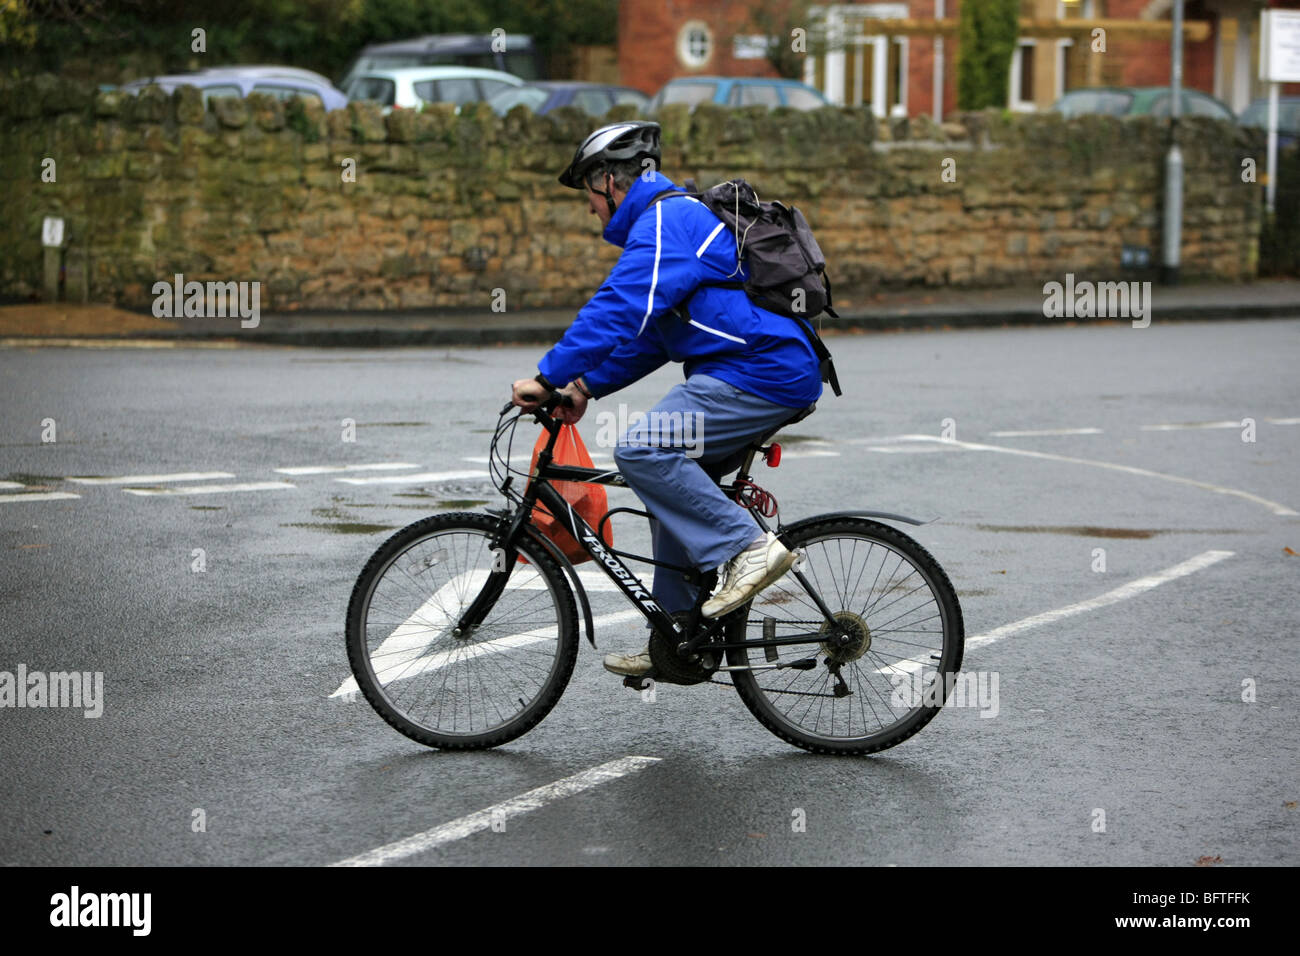 Adult male dressed in wet weather gear riding his bicycle in the rain - Stock Image